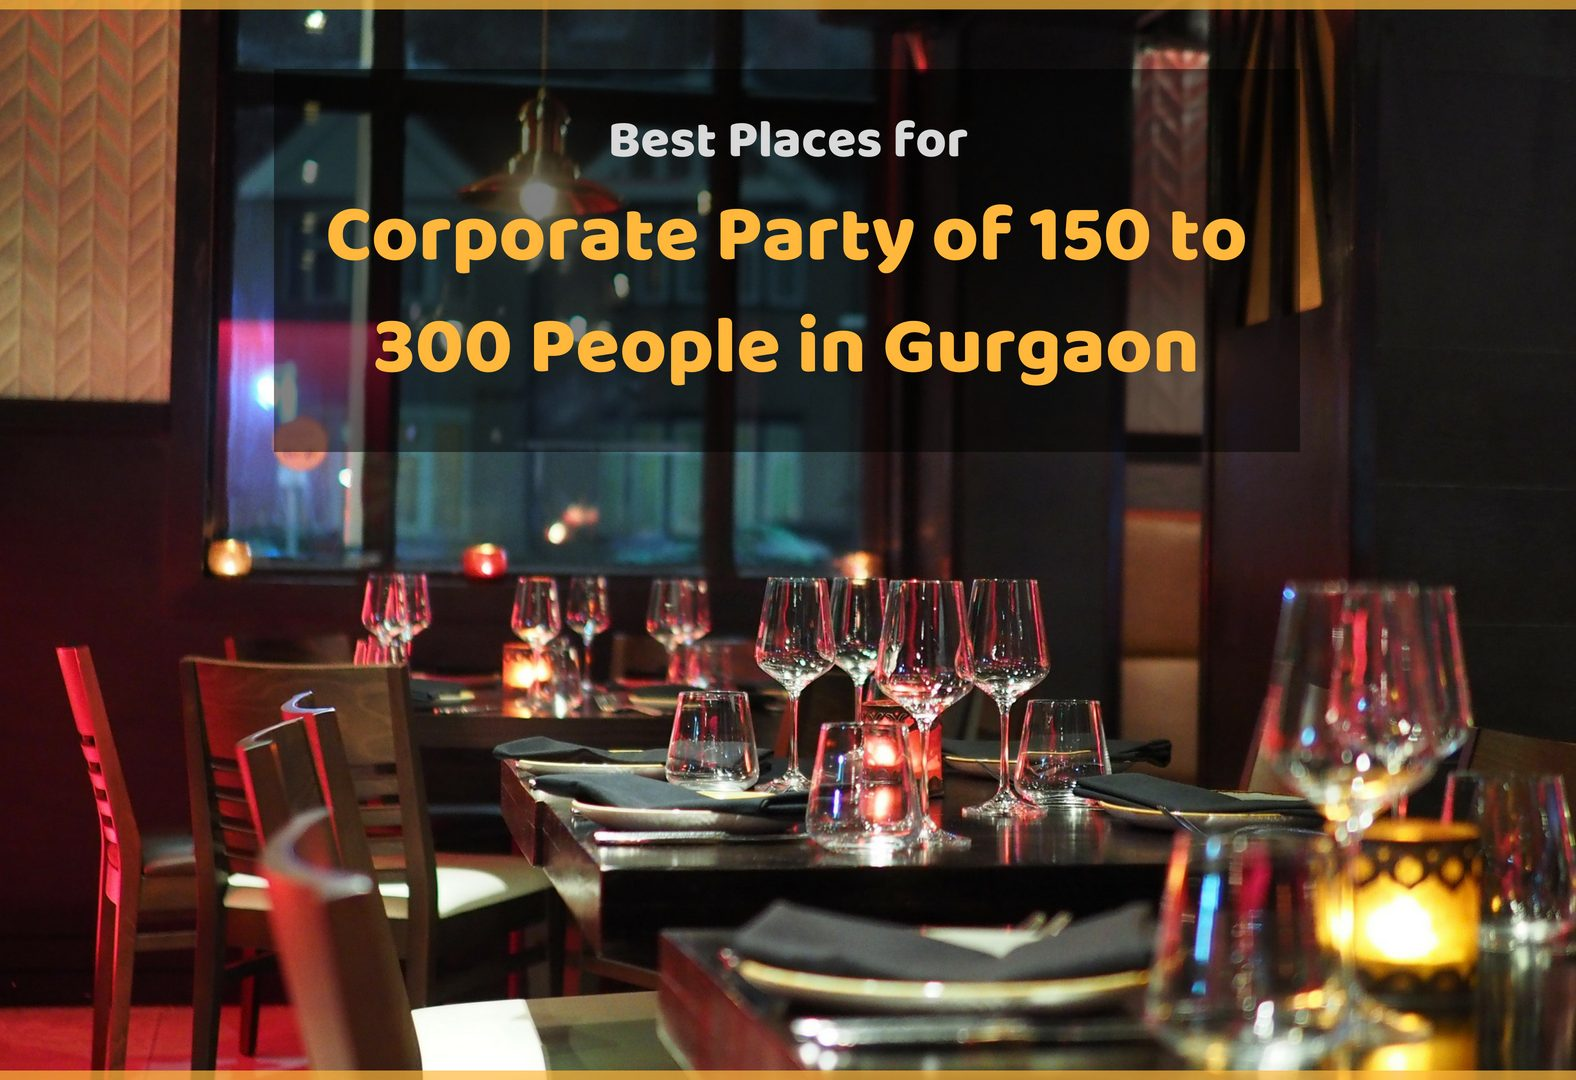 Best Places for Office Party of 150 to 300 People in Gurgaon